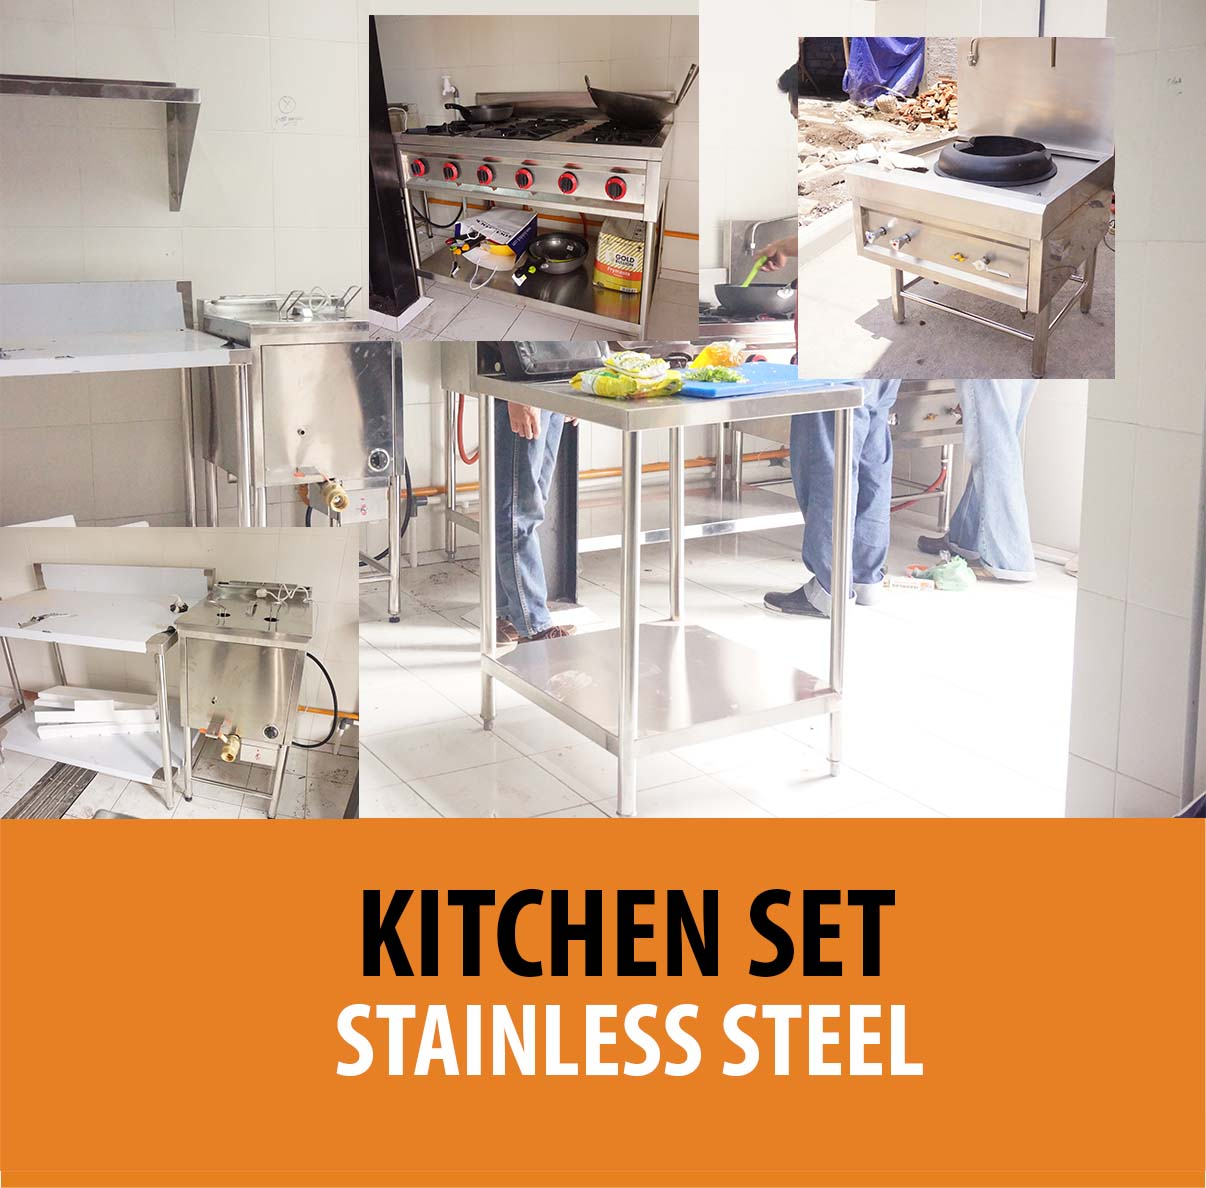 Harga kitchen set stainless per meter for Harga kitchen set stainless steel